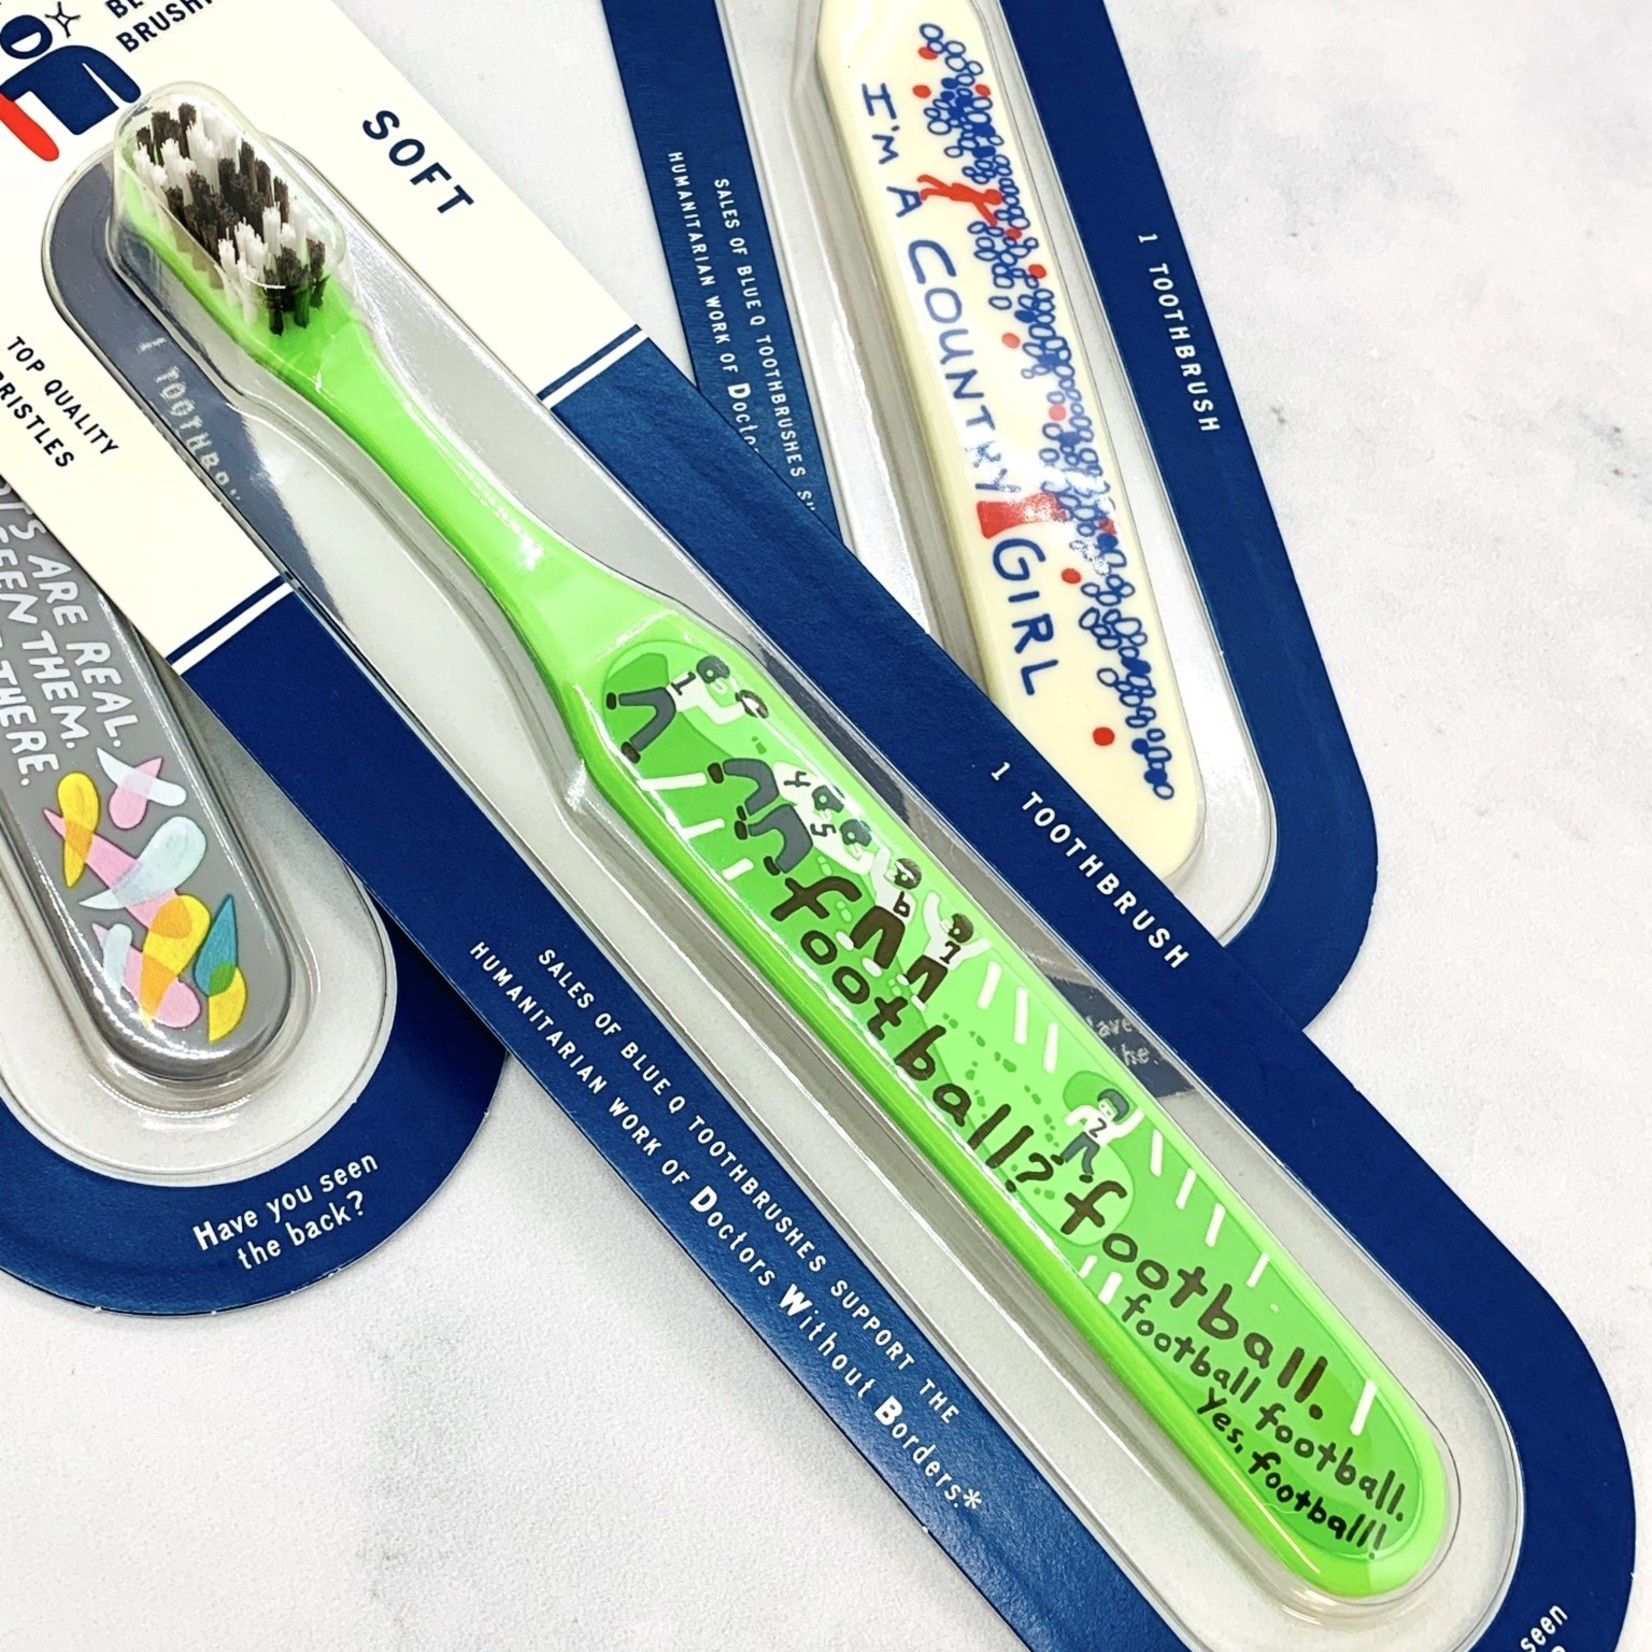 Blue Q Toothbrush